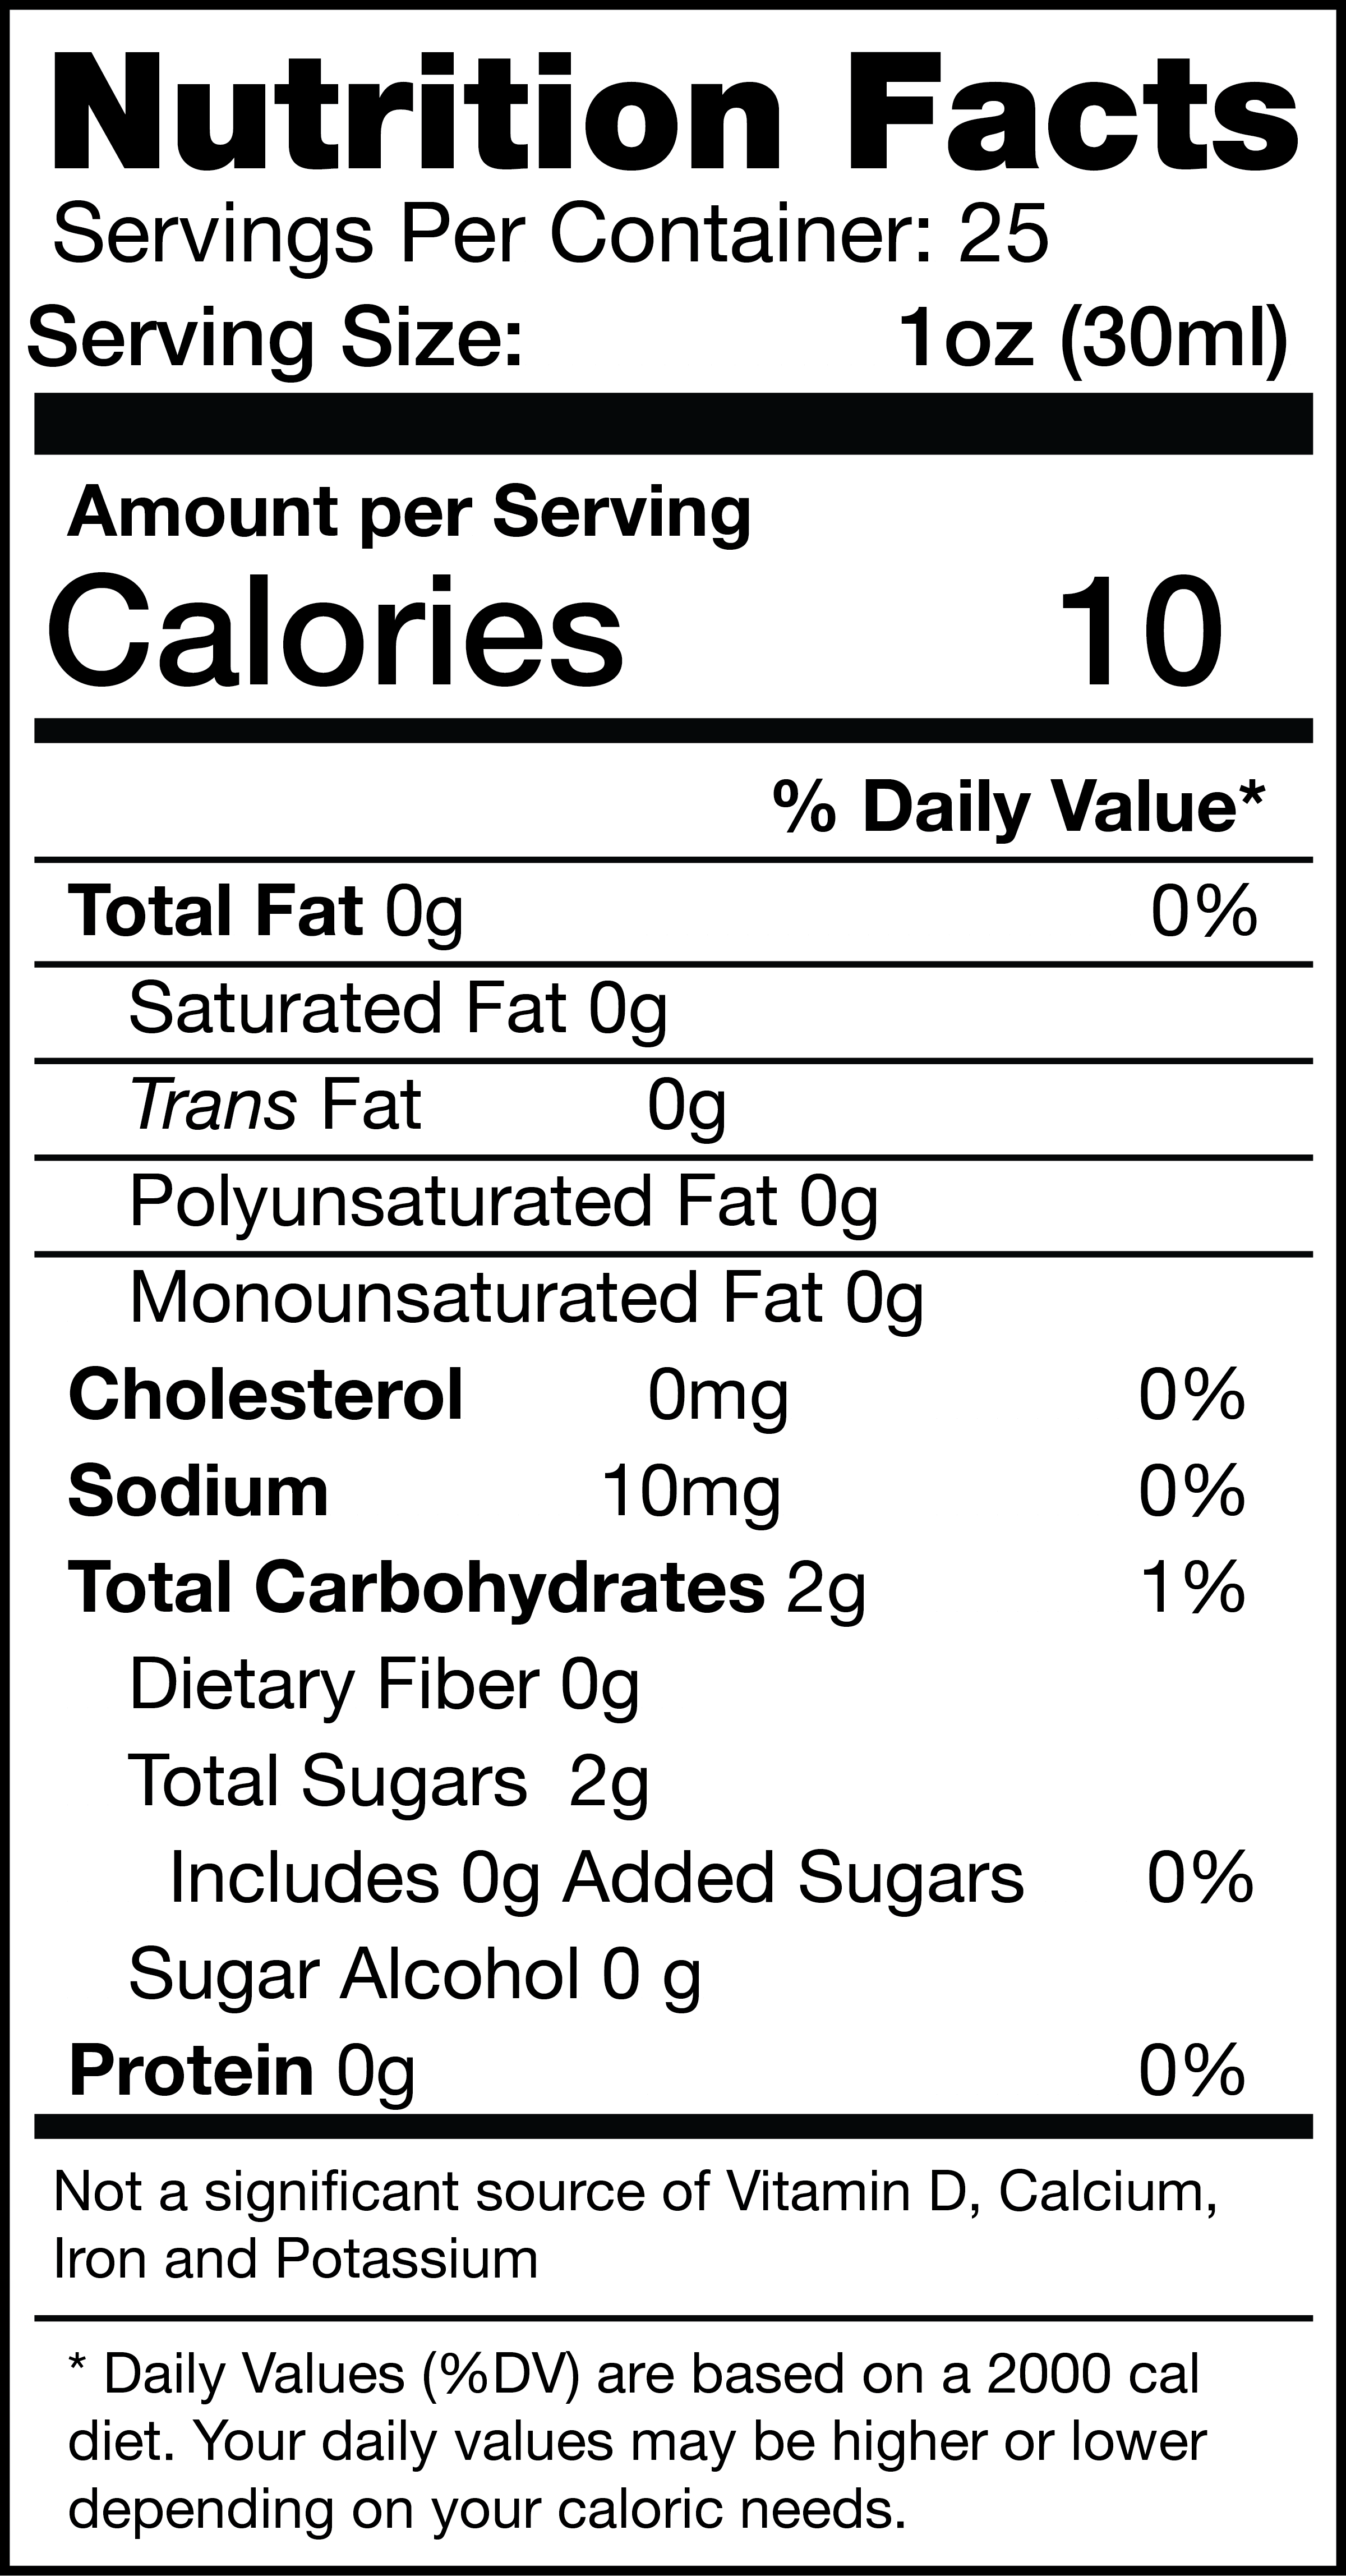 Factor Divina nutrition facts